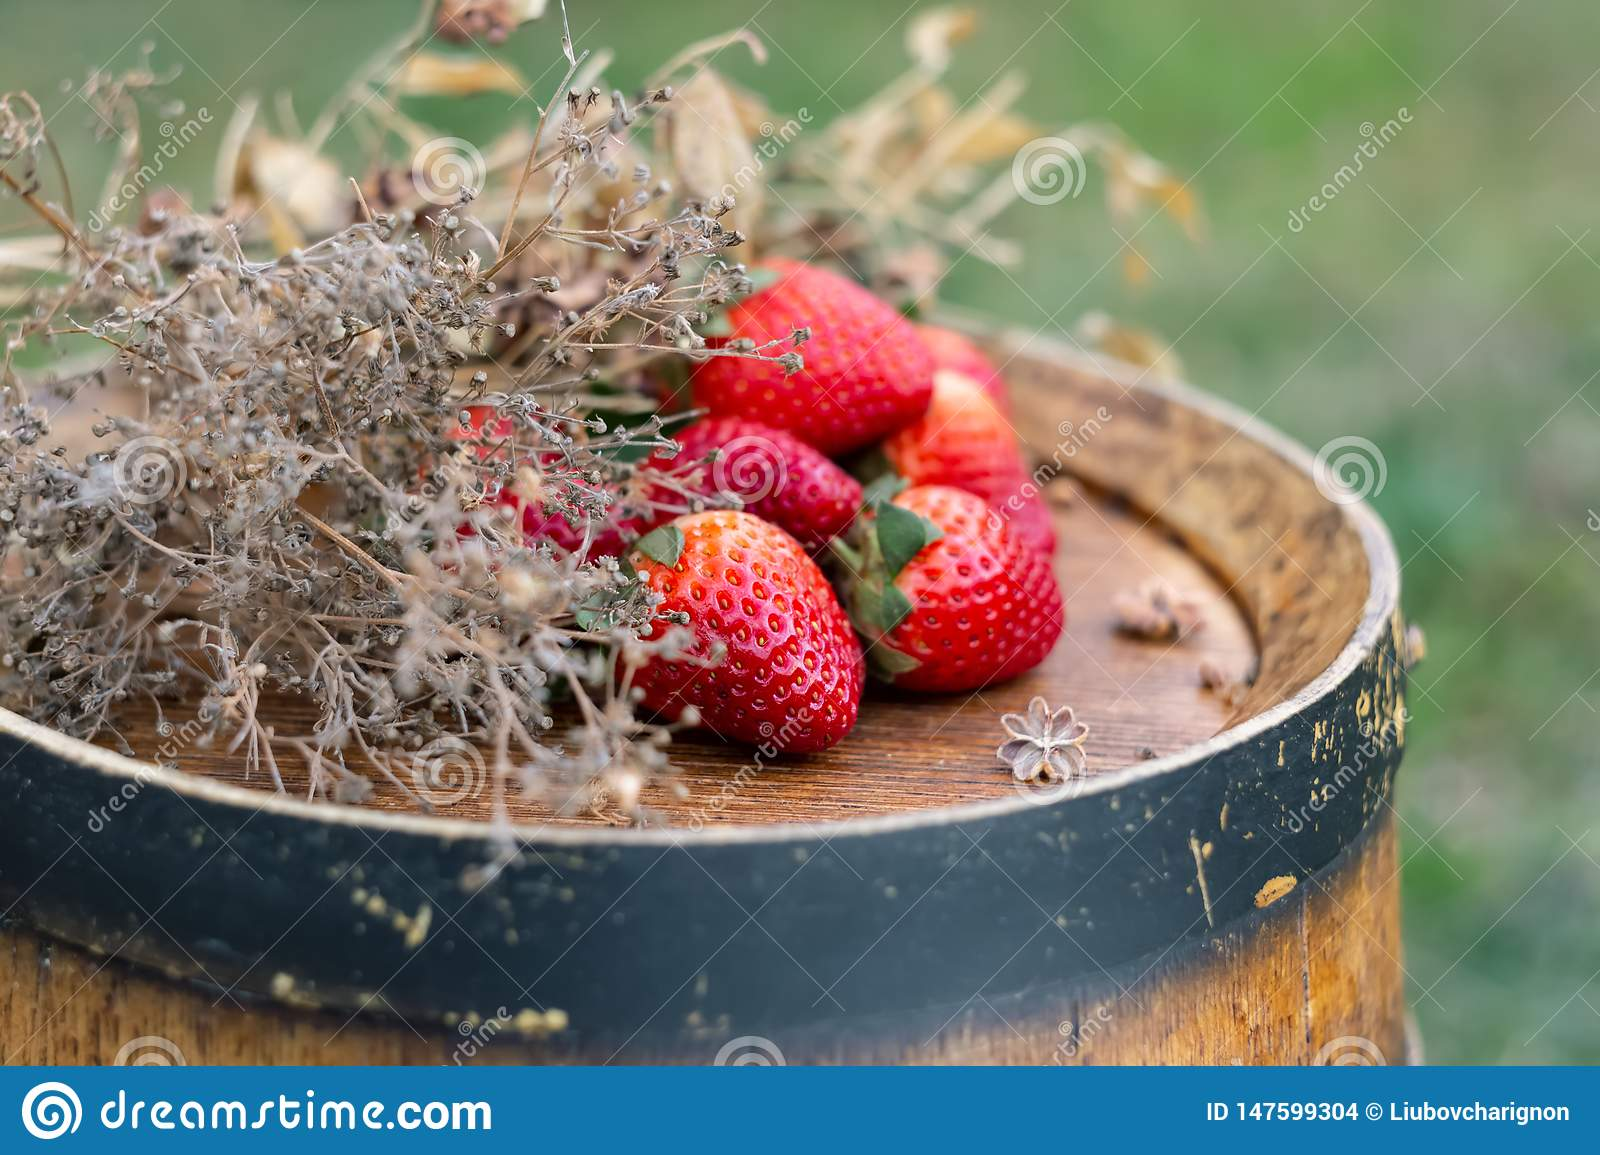 Red strawberries, dry grass on a wooden wine barrel in the garden in springtime.